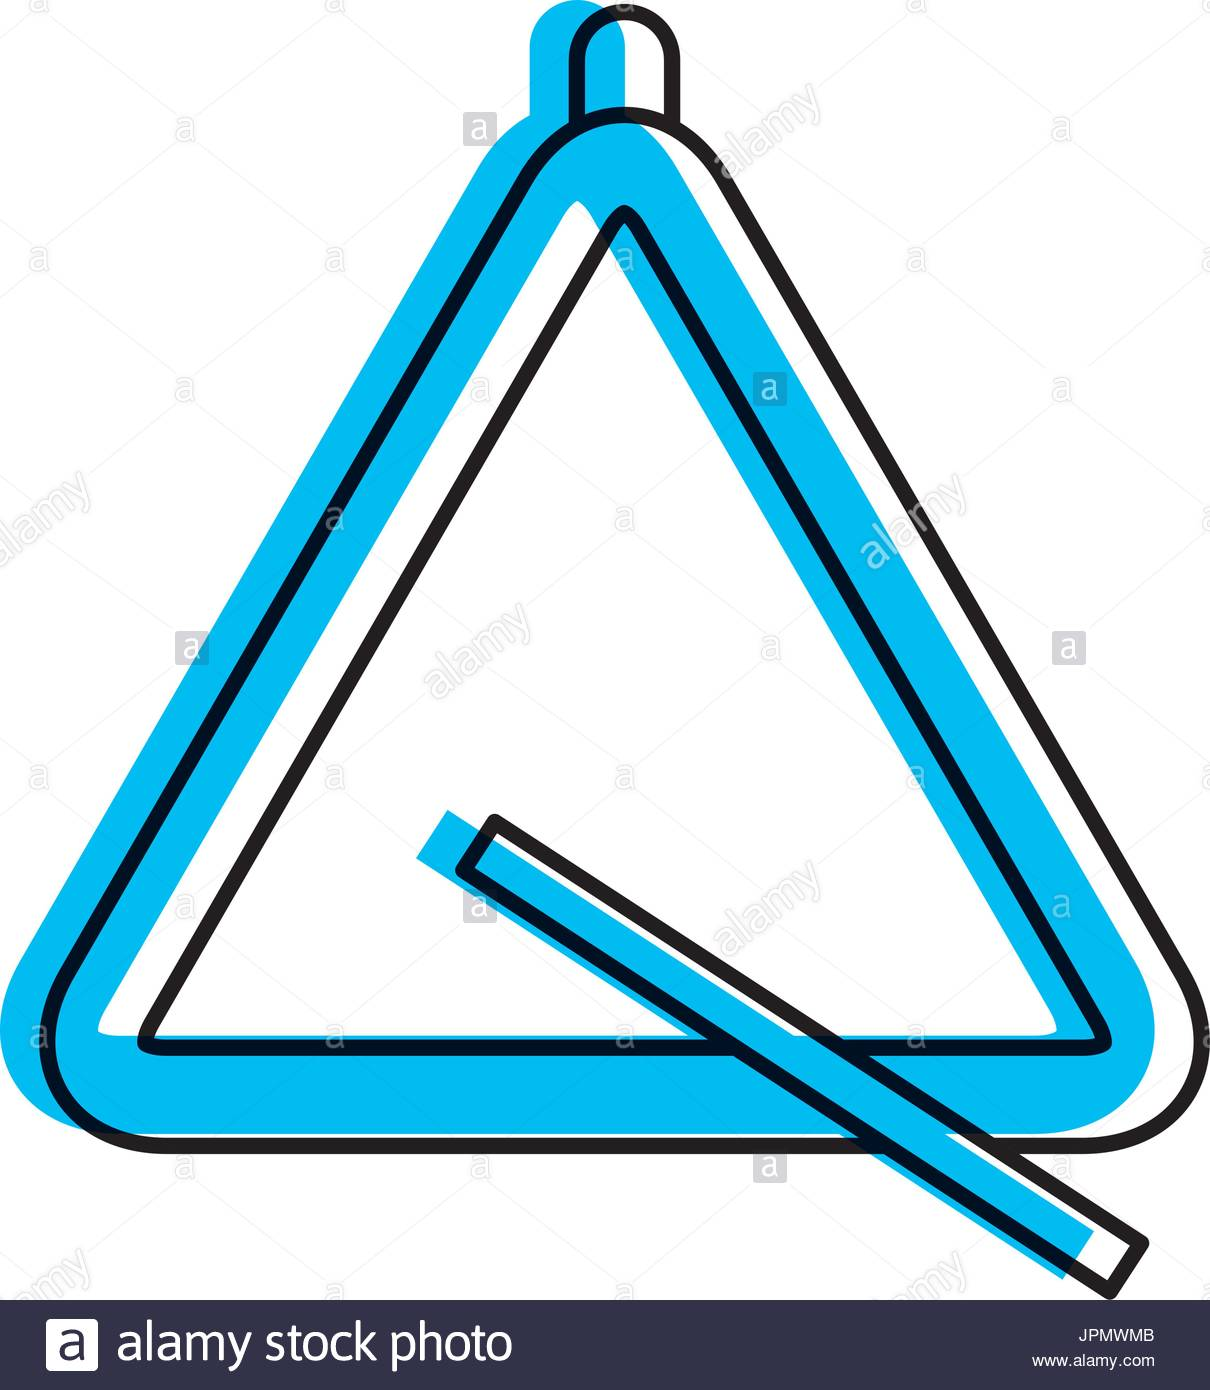 1210x1390 Triangle Instrument Stock Photos Amp Triangle Instrument Stock